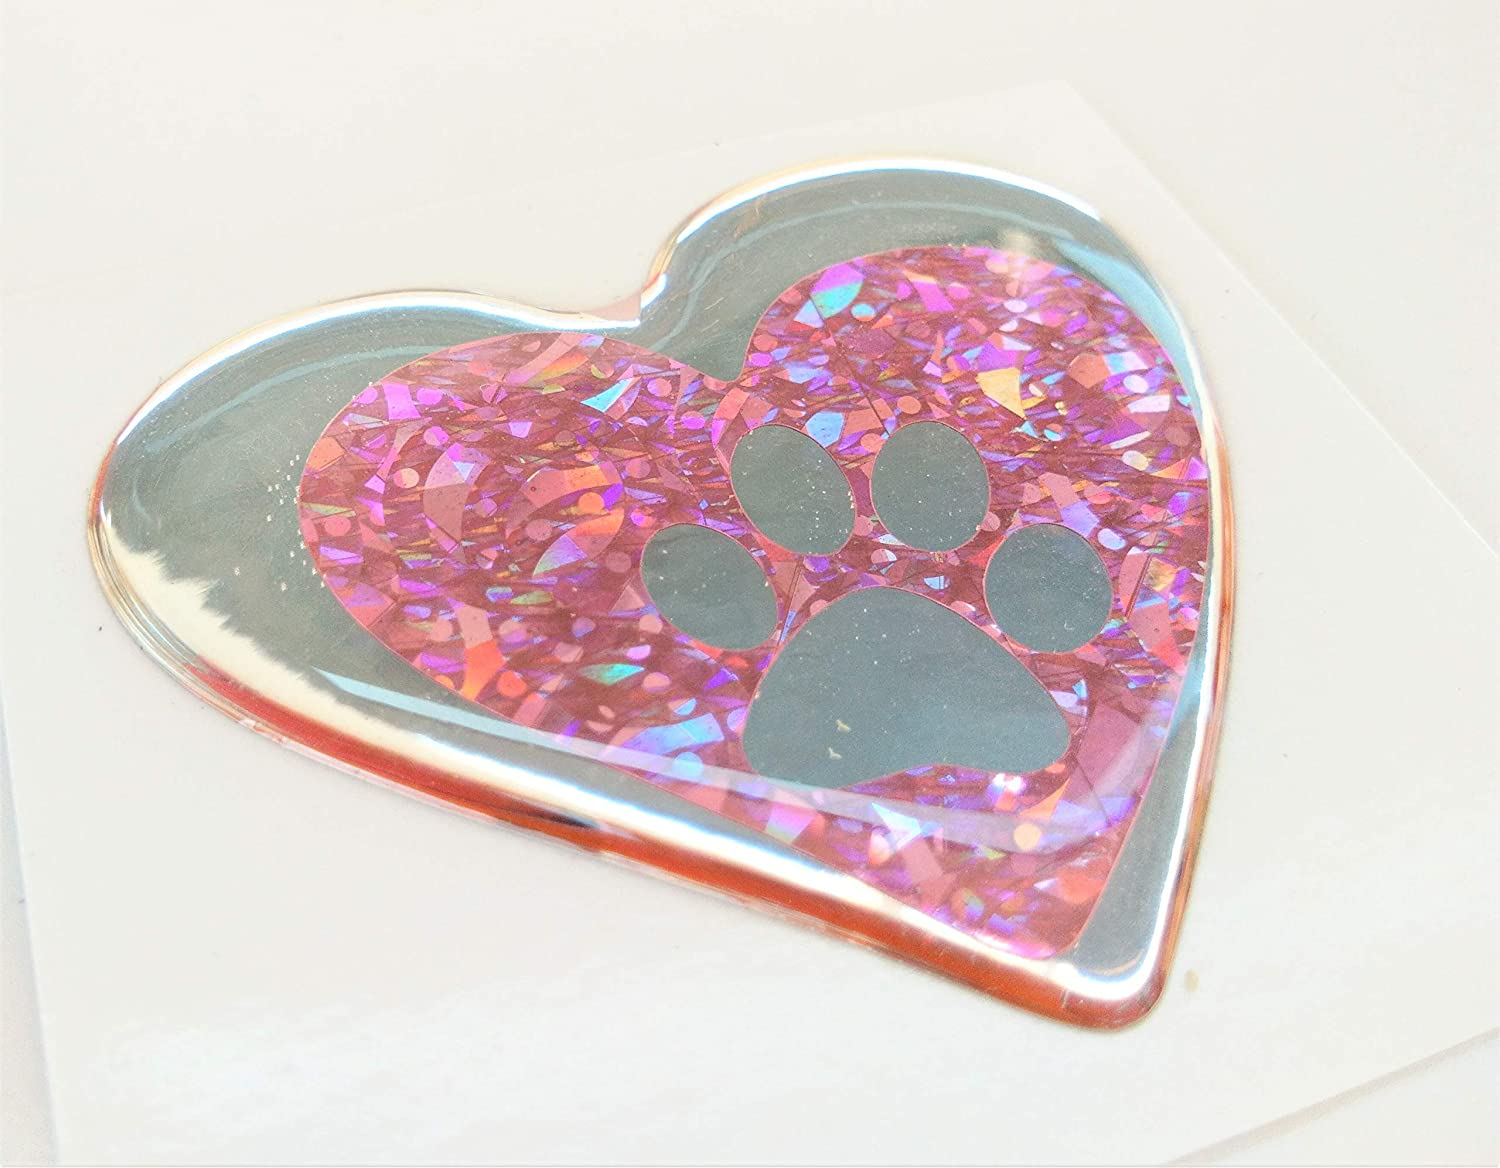 Domed 3D Dog Cat Tiger Cute Lovely Paw Domed Pink Reflective Holographic Decals Decal Safety Silver Chrome Foot Dog Footprint Lover Animal Love Heart Sticker Vinyl Sport Motorbike Helmet Motorcycle Laptop Notebook Mac Phone Mobile Bike Racing Car Decal Bad